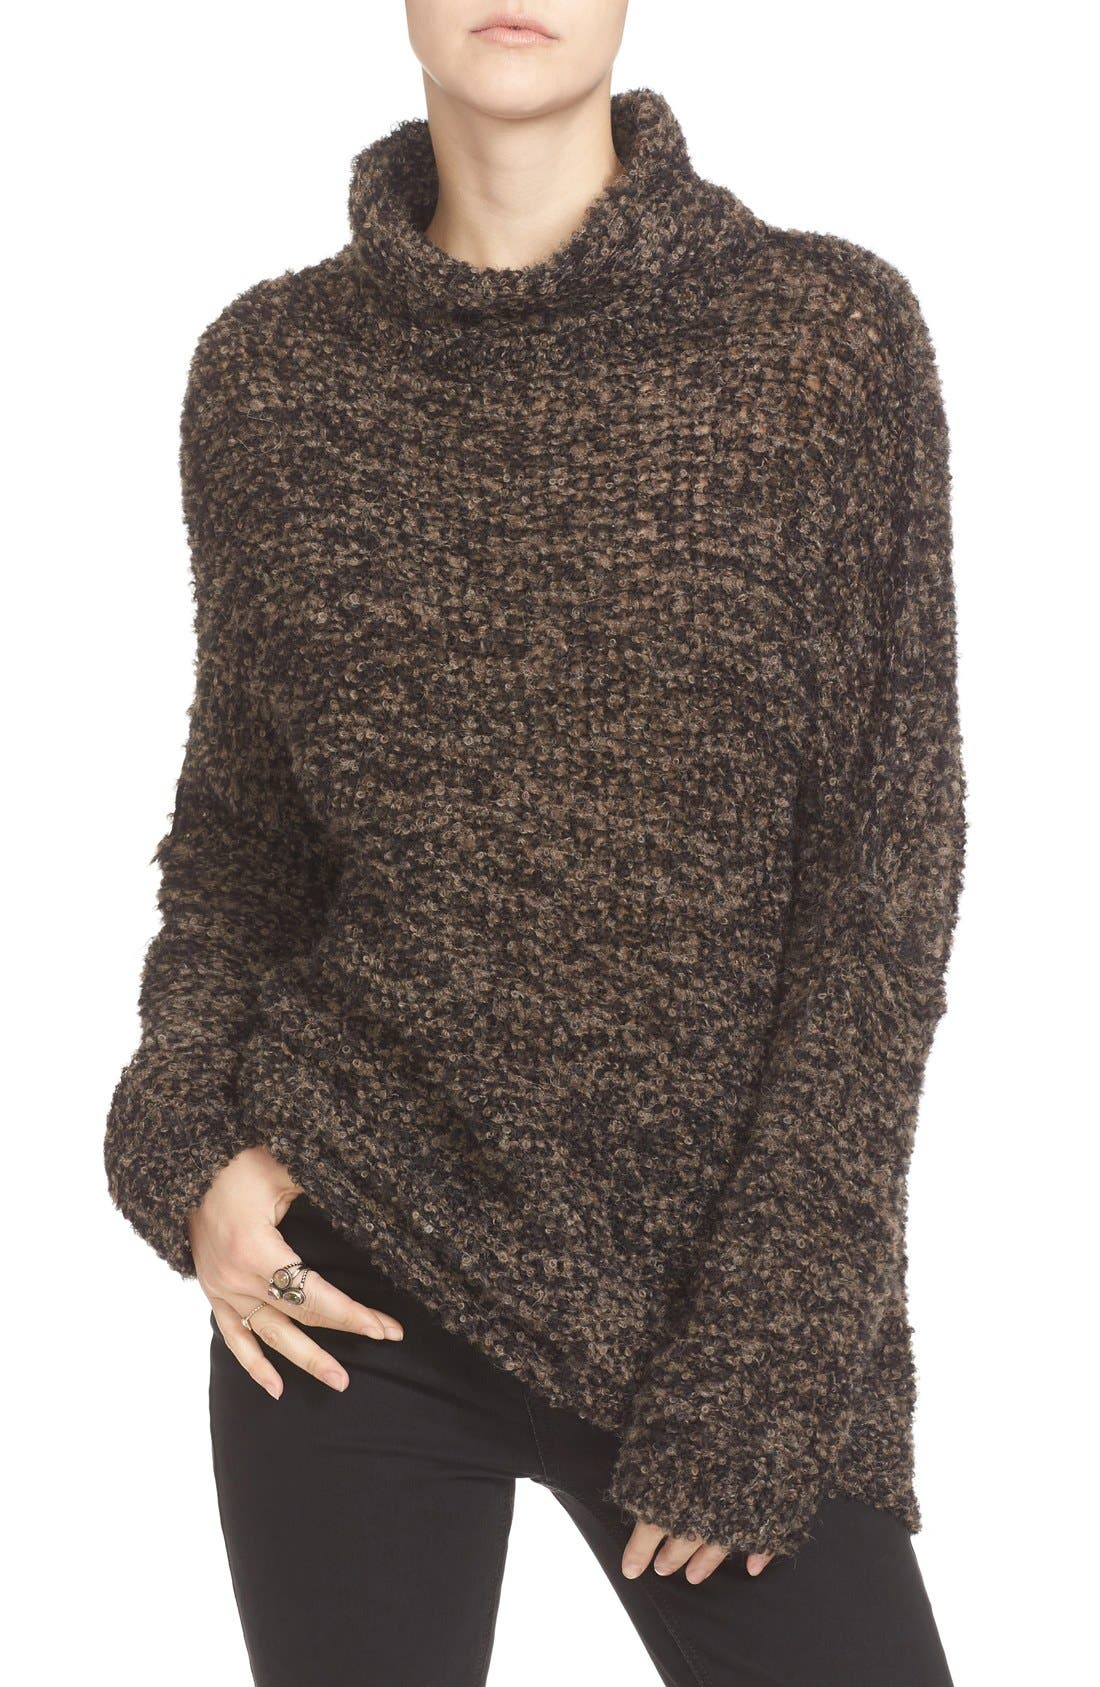 'She's All That' Knit Turtleneck Sweater,                         Main,                         color, Black